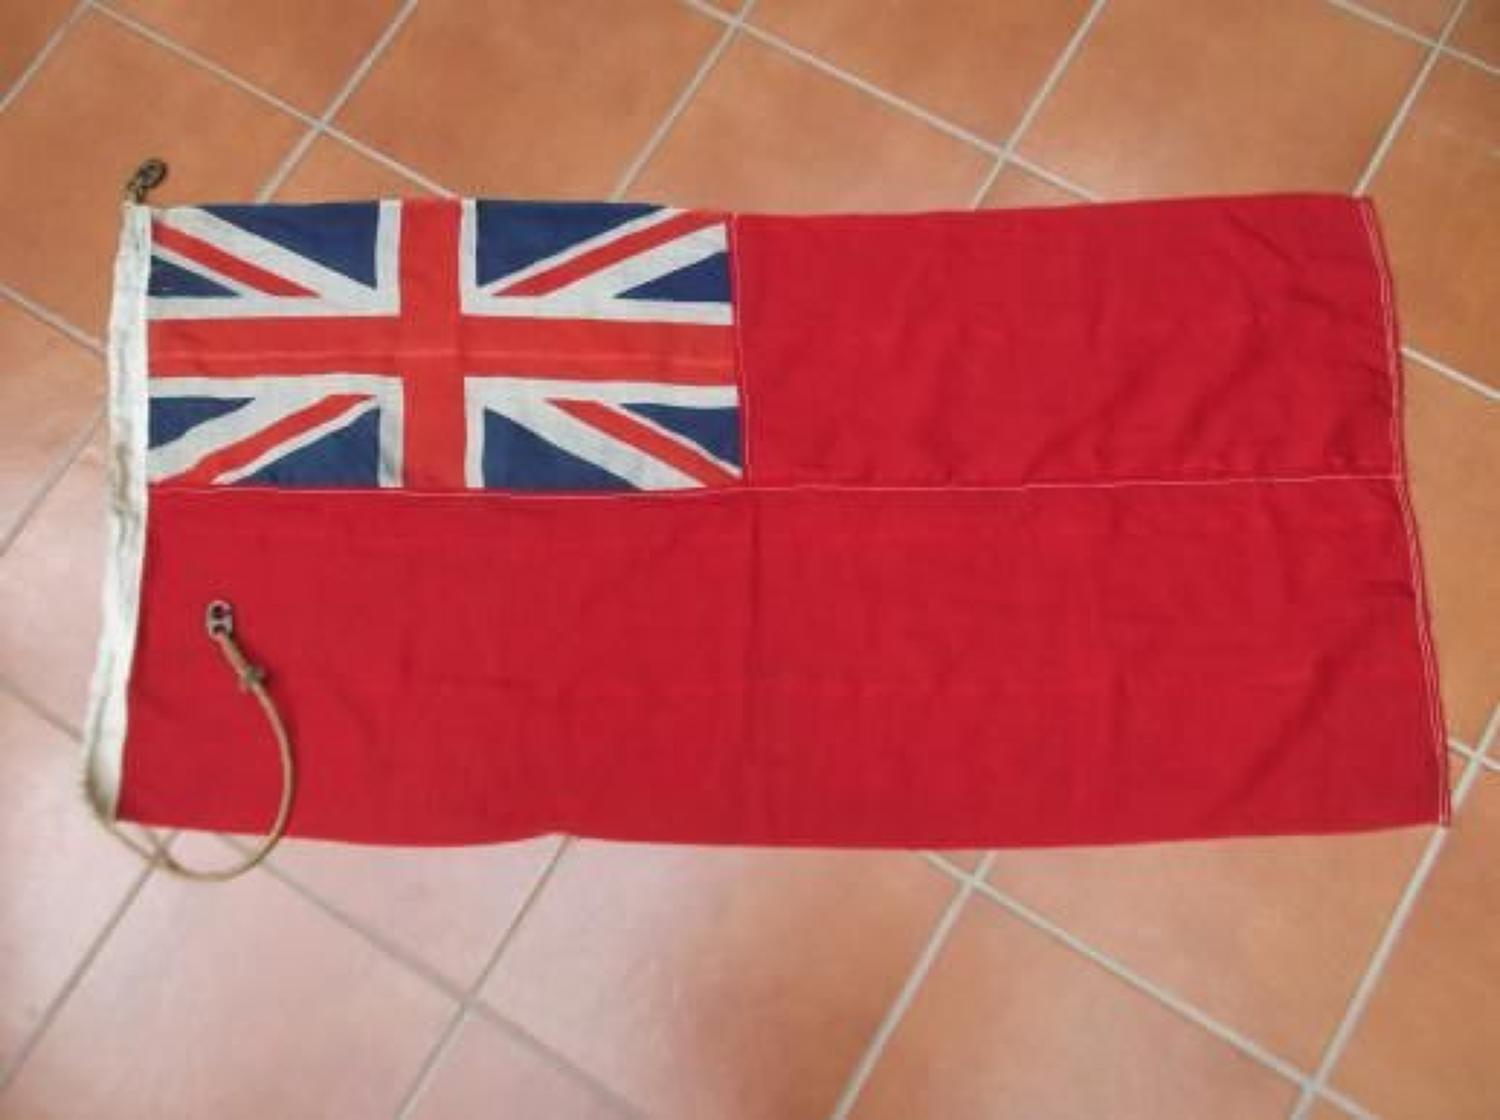 WW2 Royal Navy Red Ensign Ships Flag Dated 1944